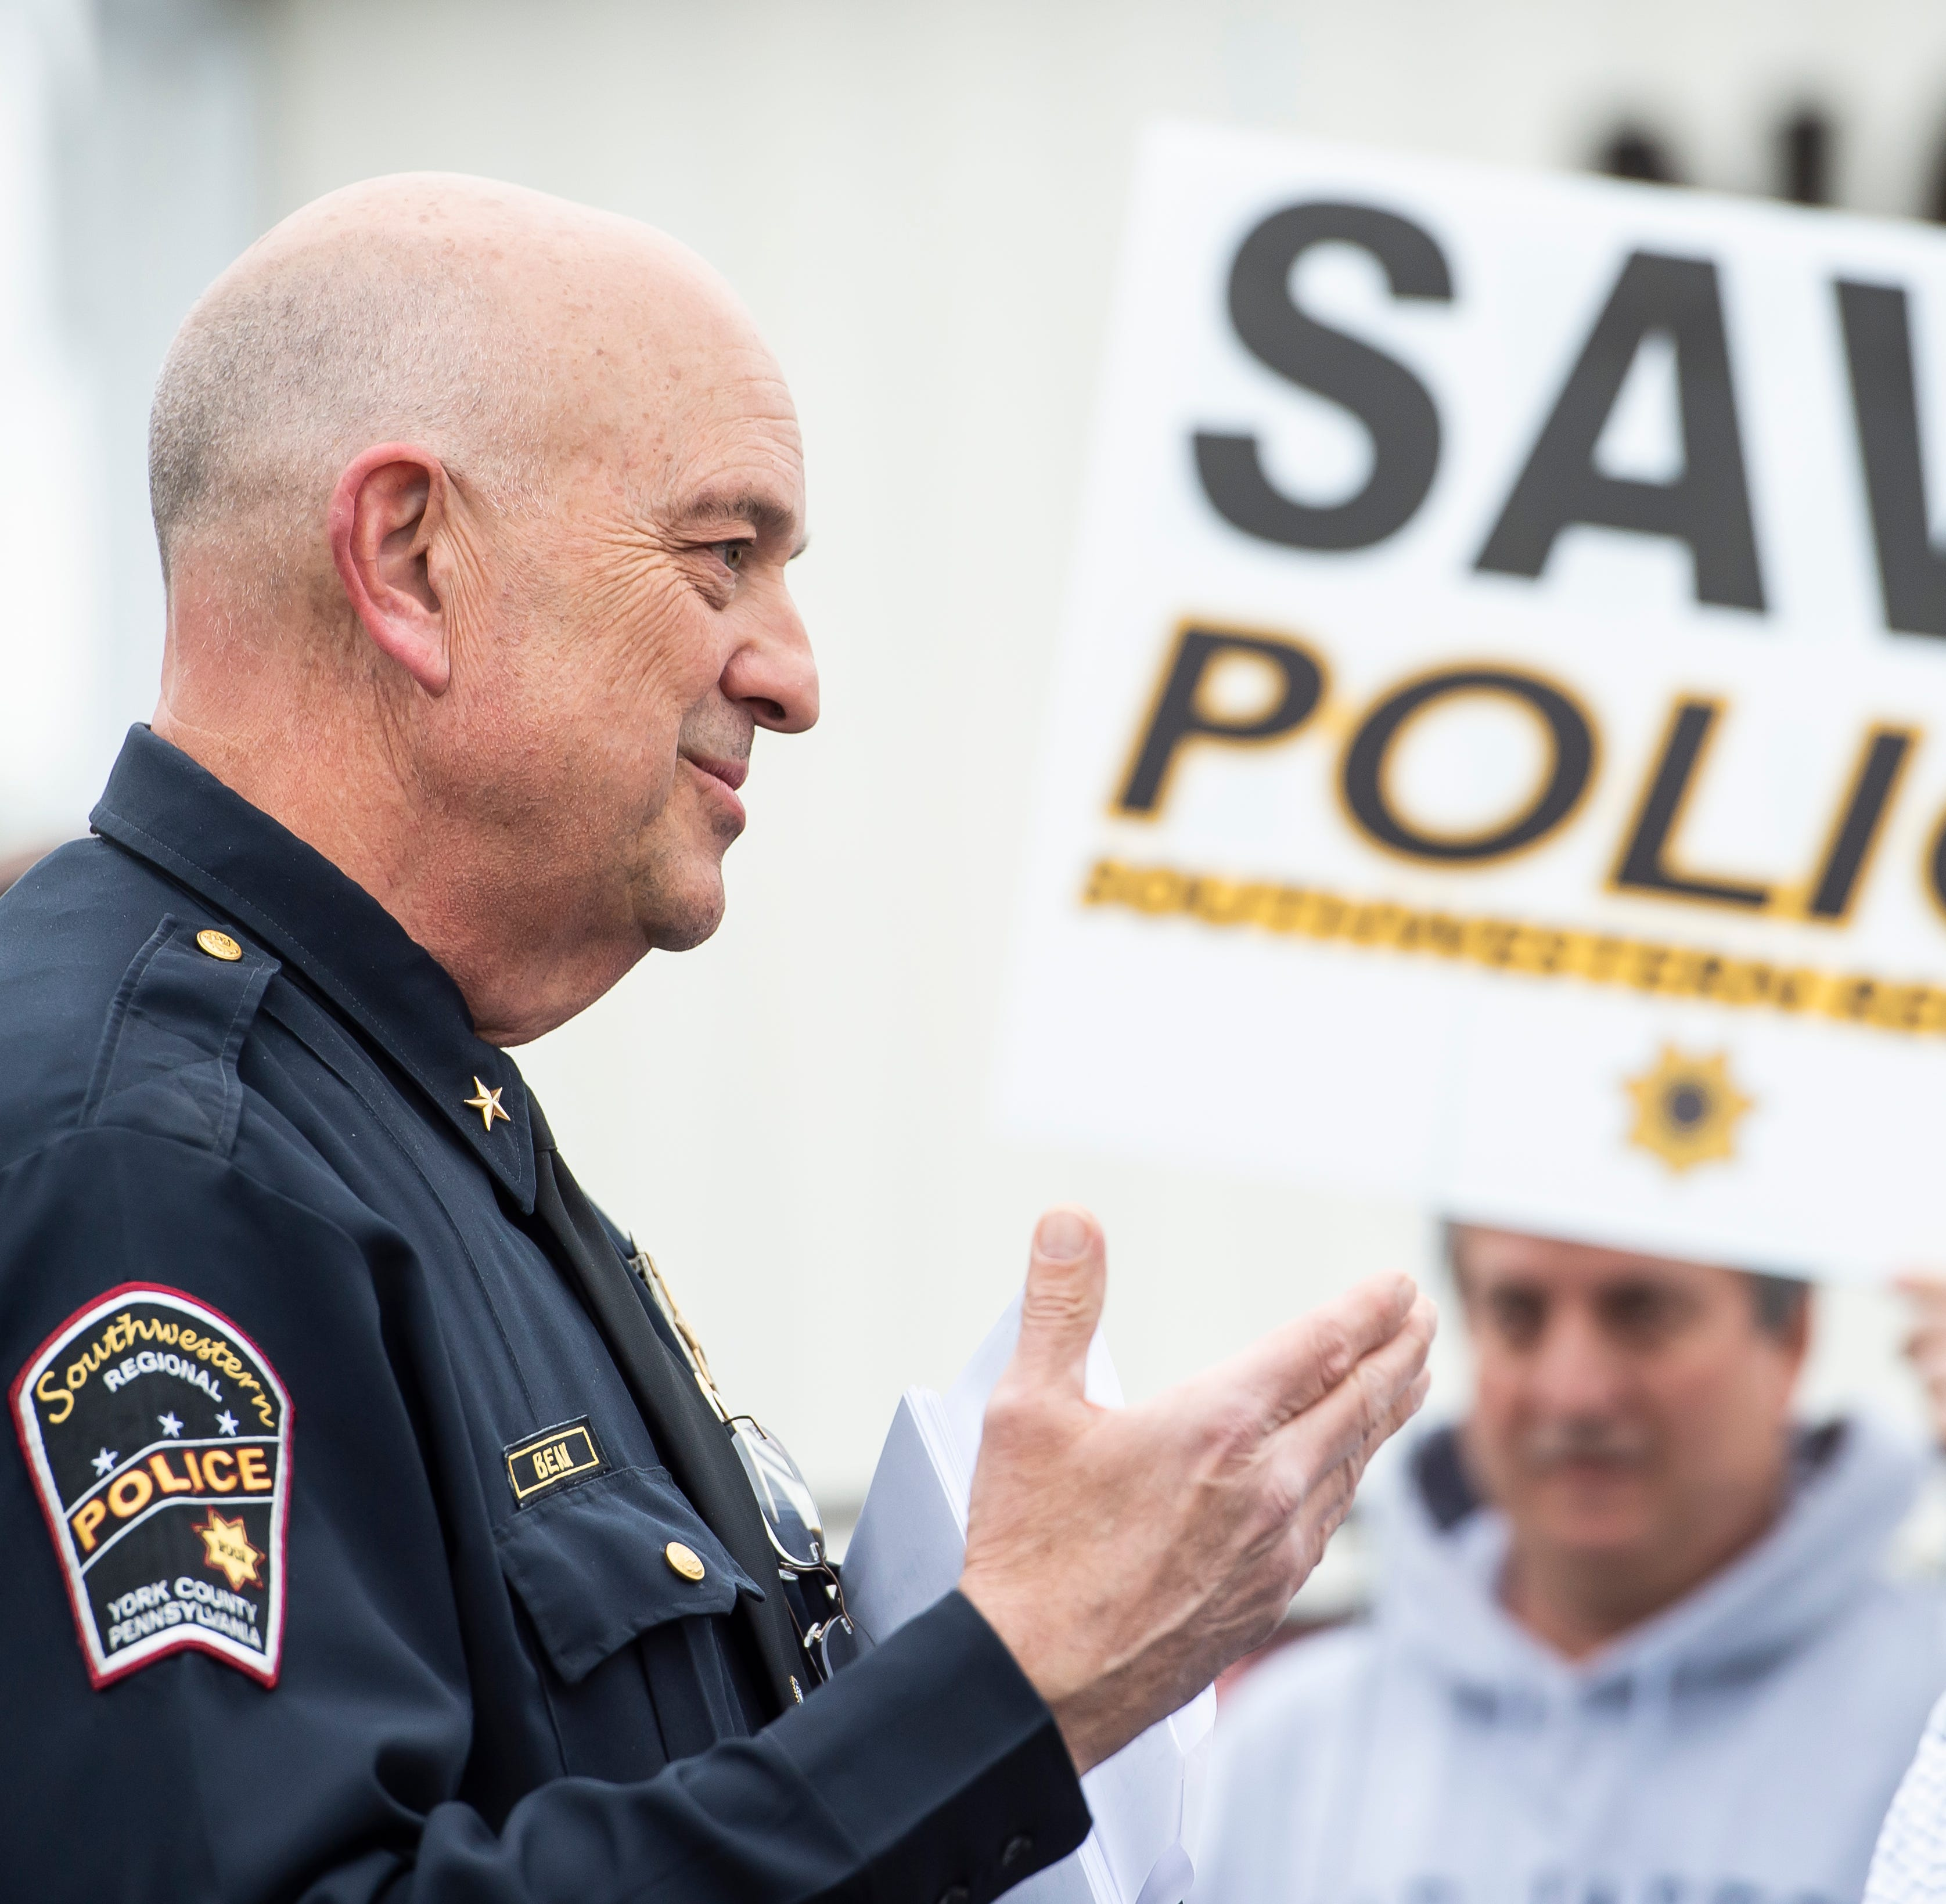 Southwestern Regional Police Chief resigns to help downsize the department